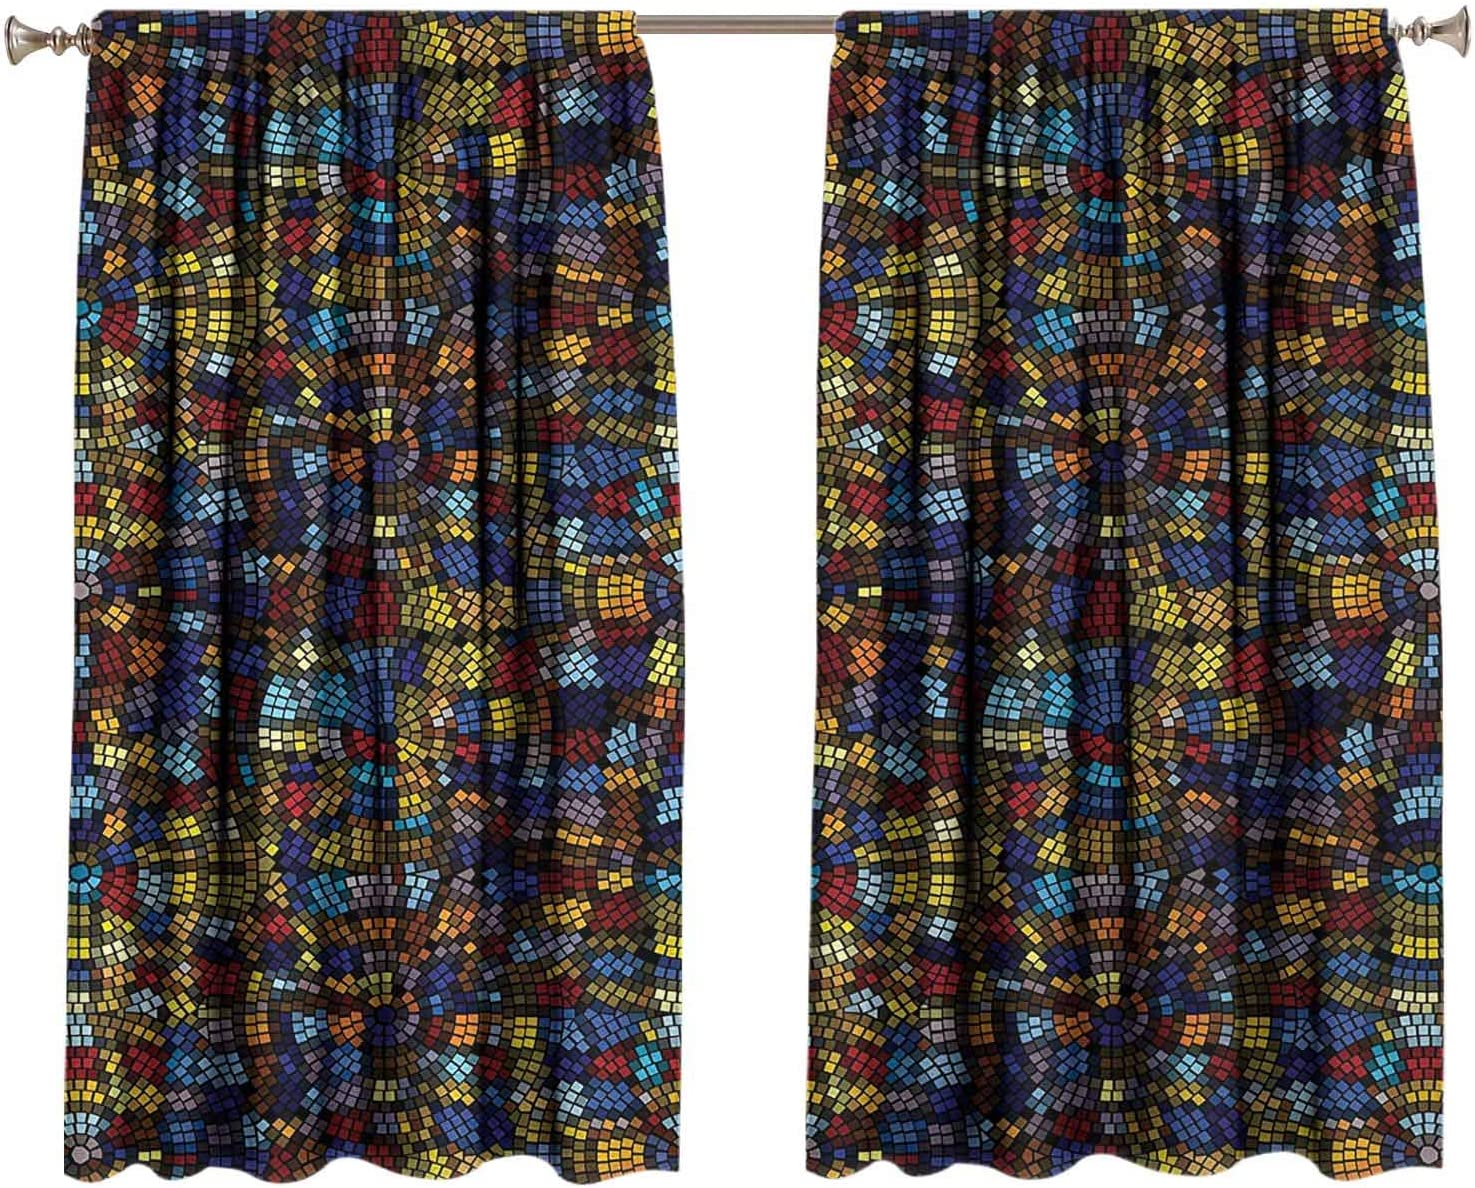 Antique Blackout Drapes for Bedroom Mosaic Ti ☆送料無料☆ 当日発送可能 春の新作シューズ満載 Medieval Victorian